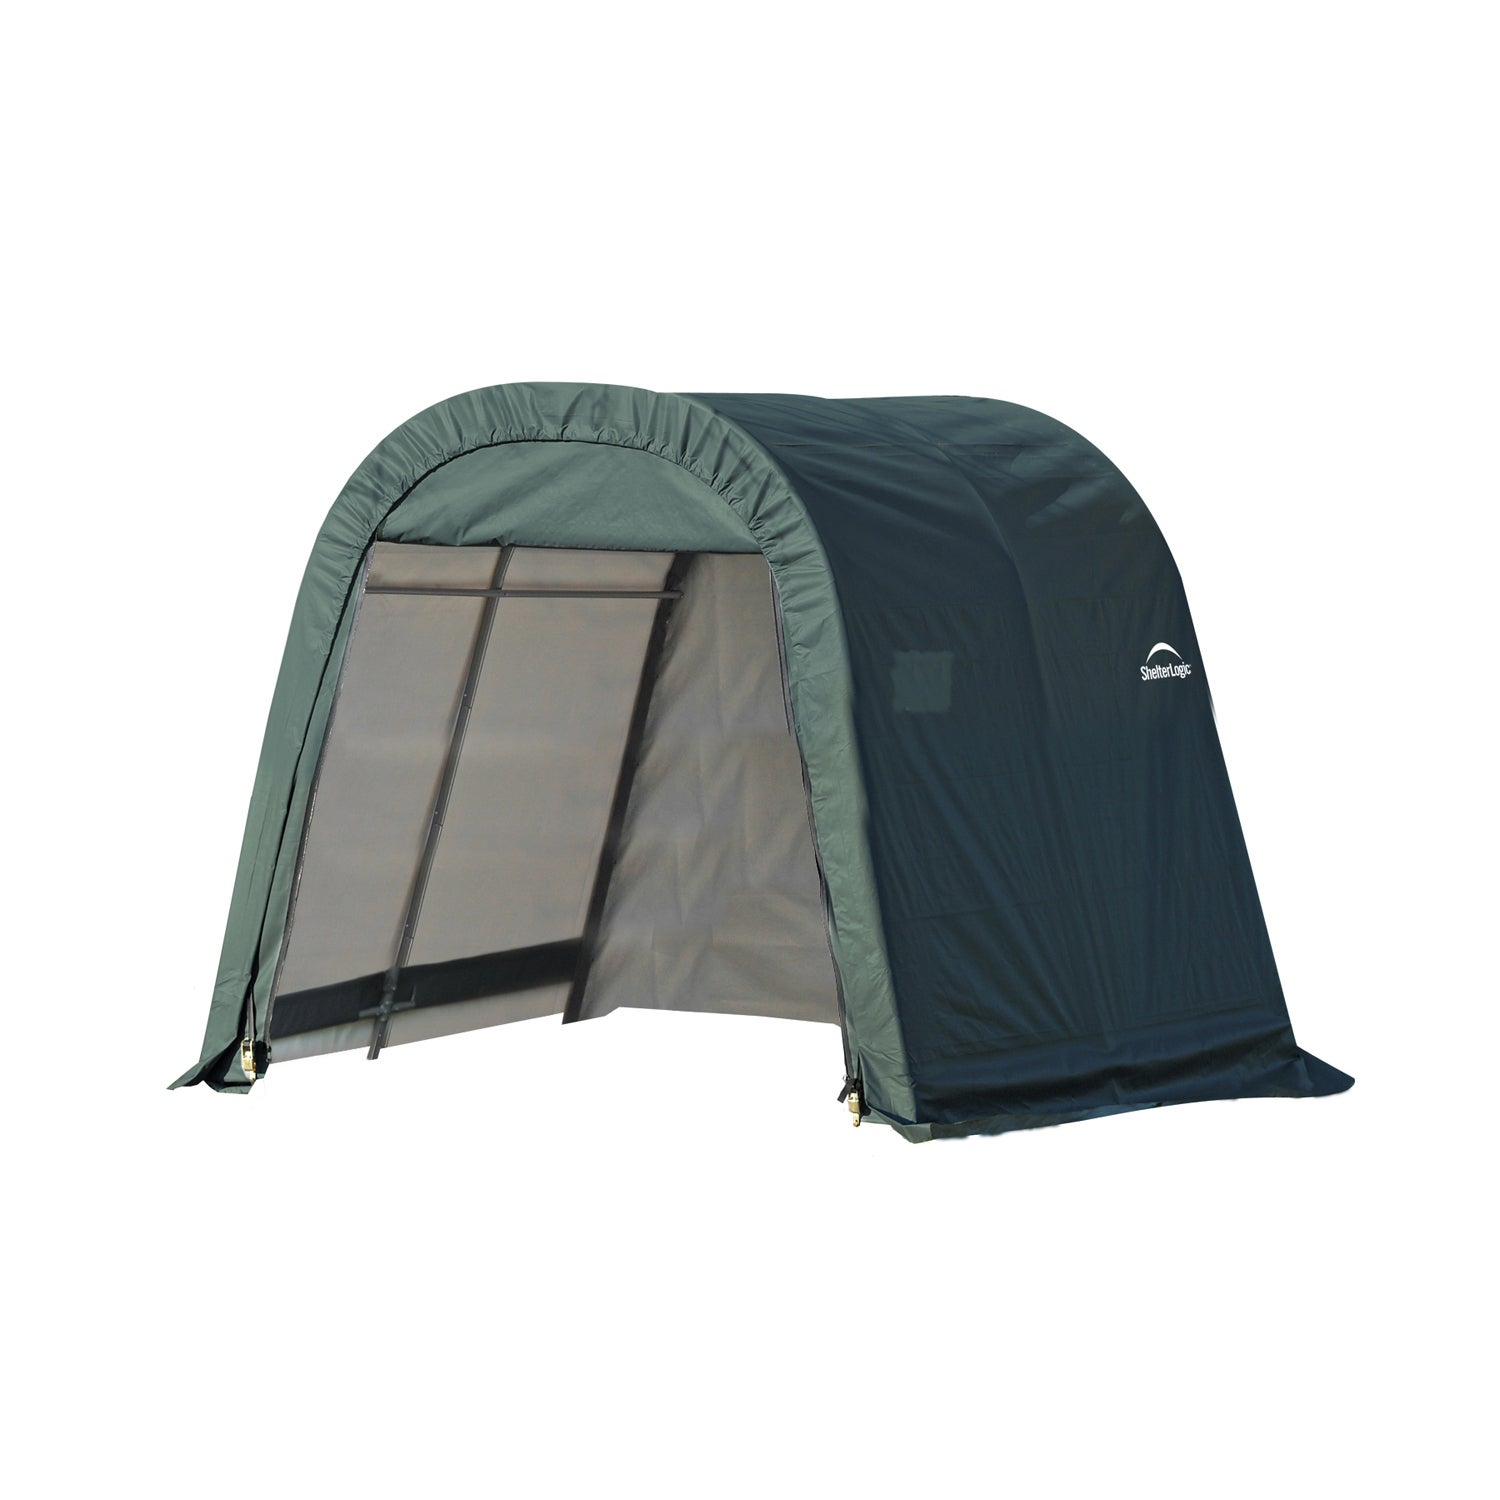 Overstock.com Shelterlogic Outdoor Round Garage Boat/ Car Green 8 x 8 x 8-foot Storage Shed at Sears.com